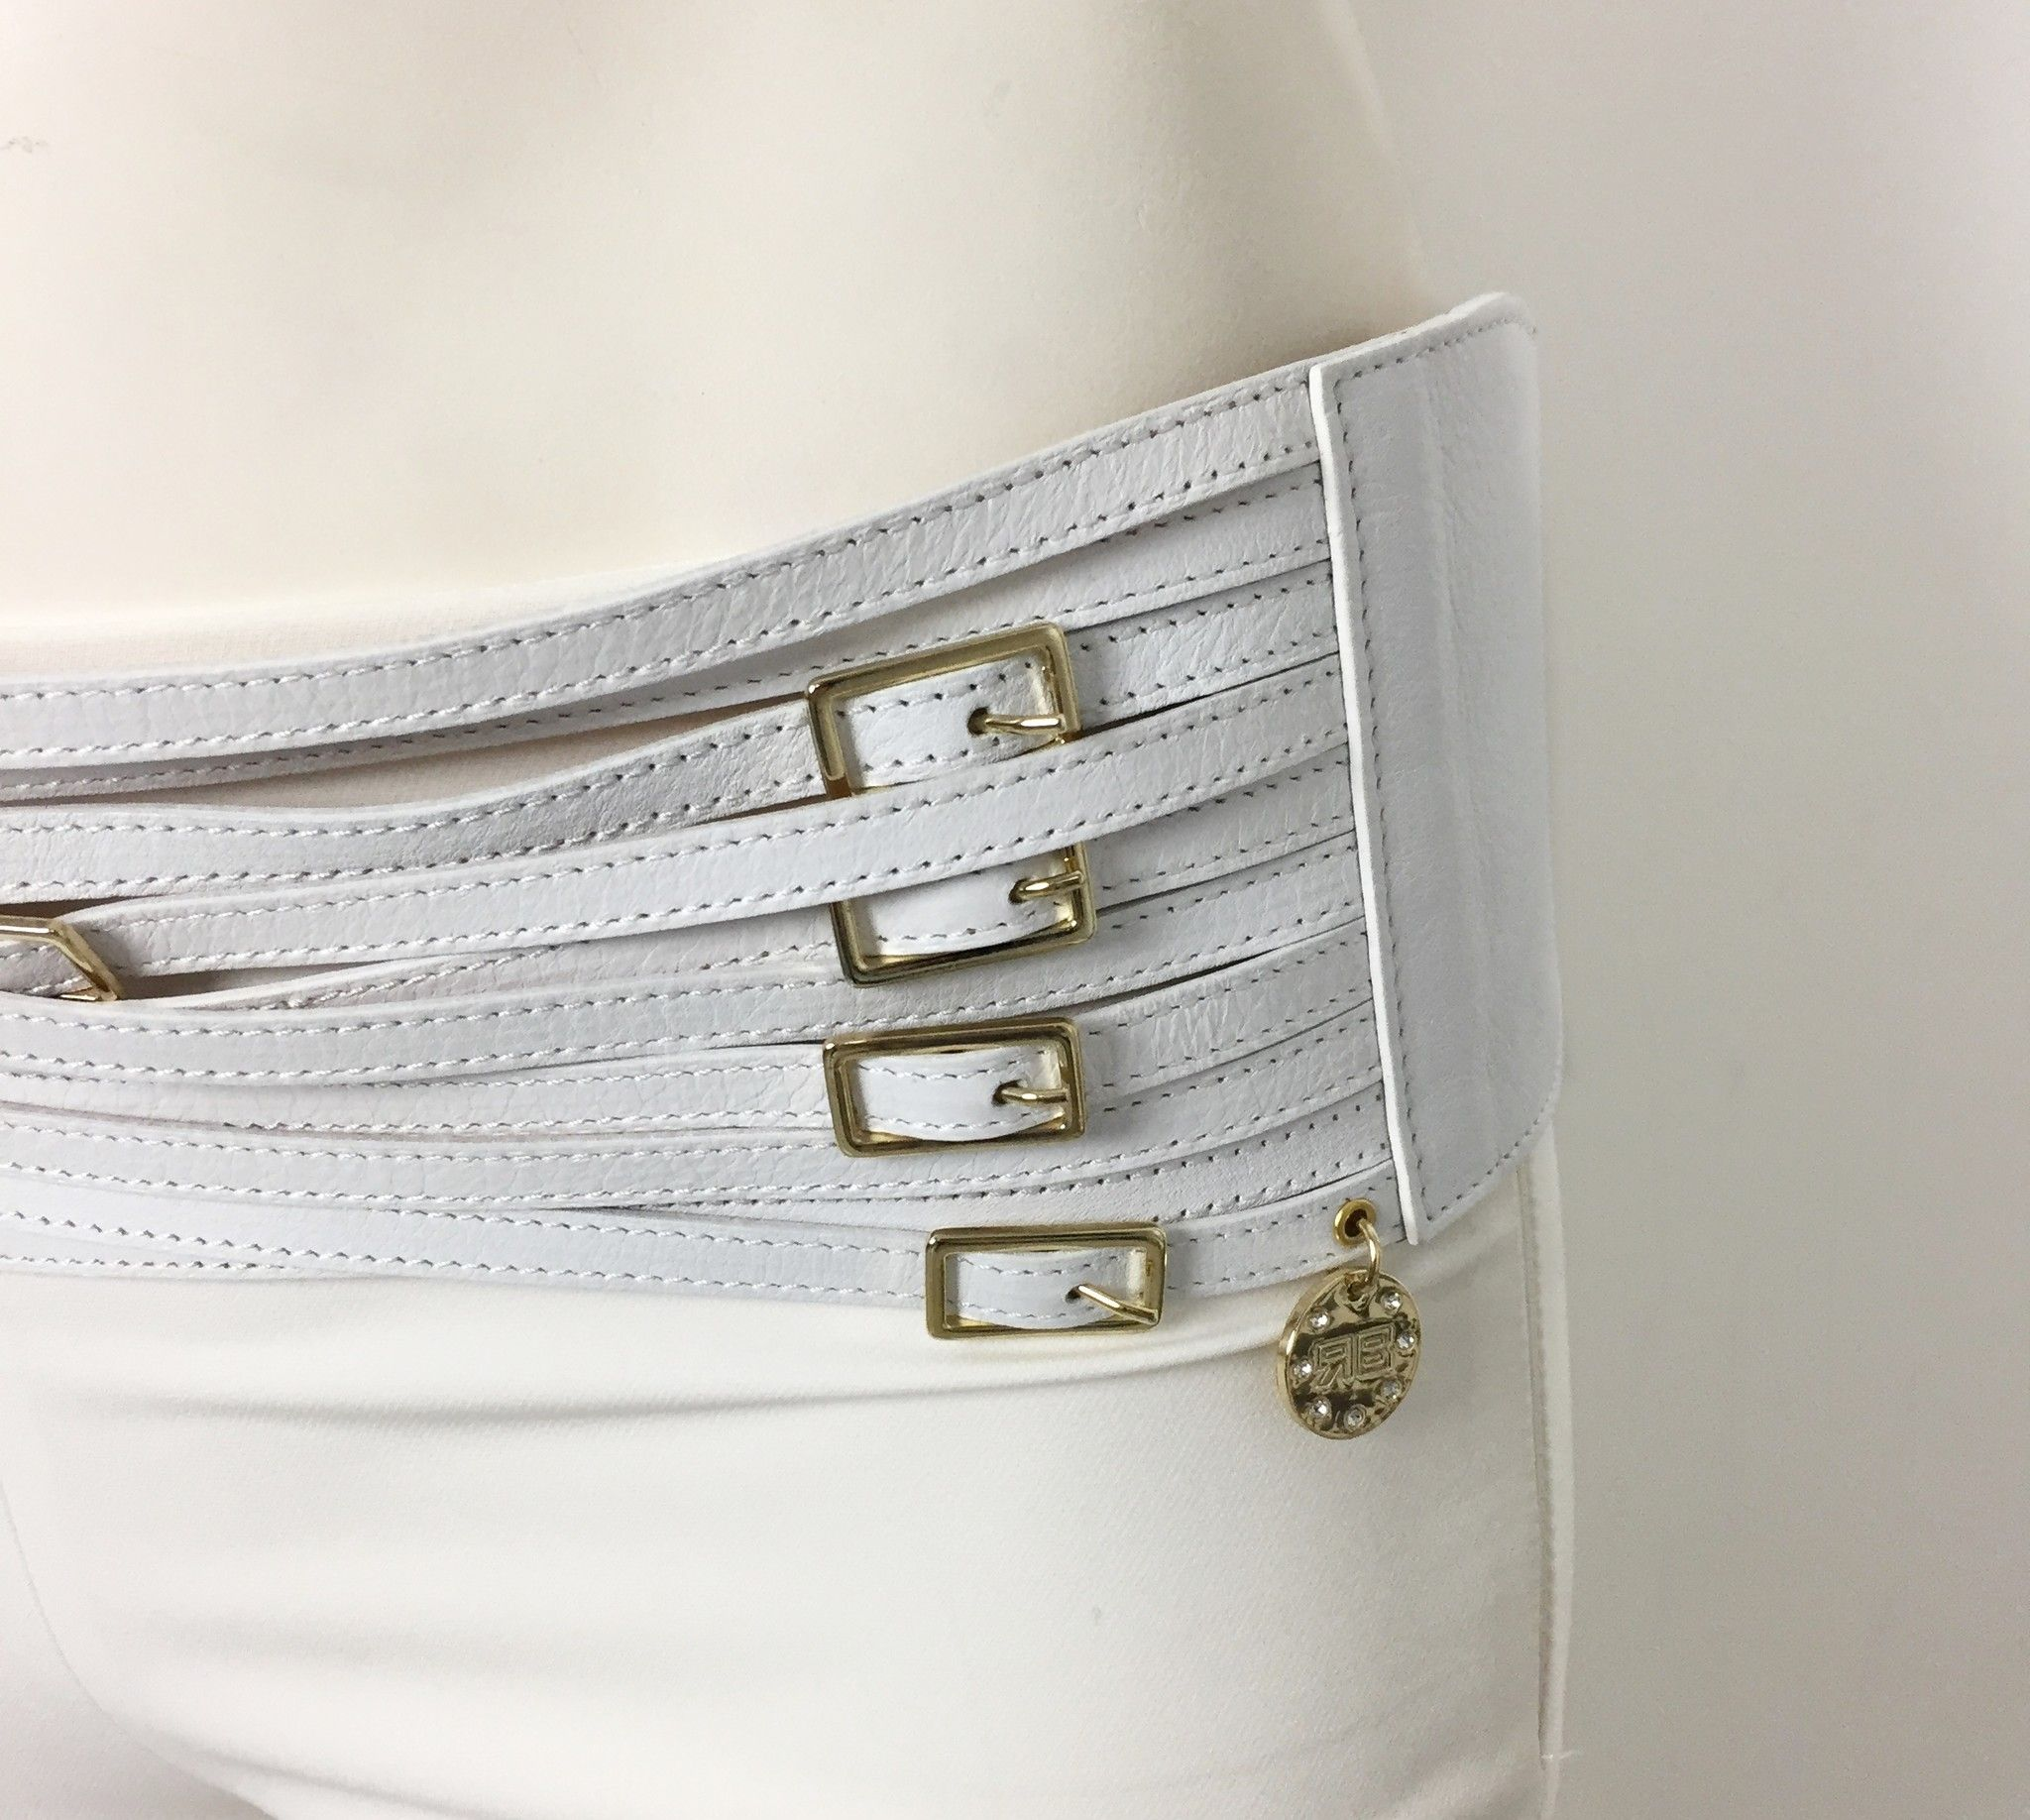 Roberta Biagi Multi Buckle Belt with Gold Trim Cod.02148